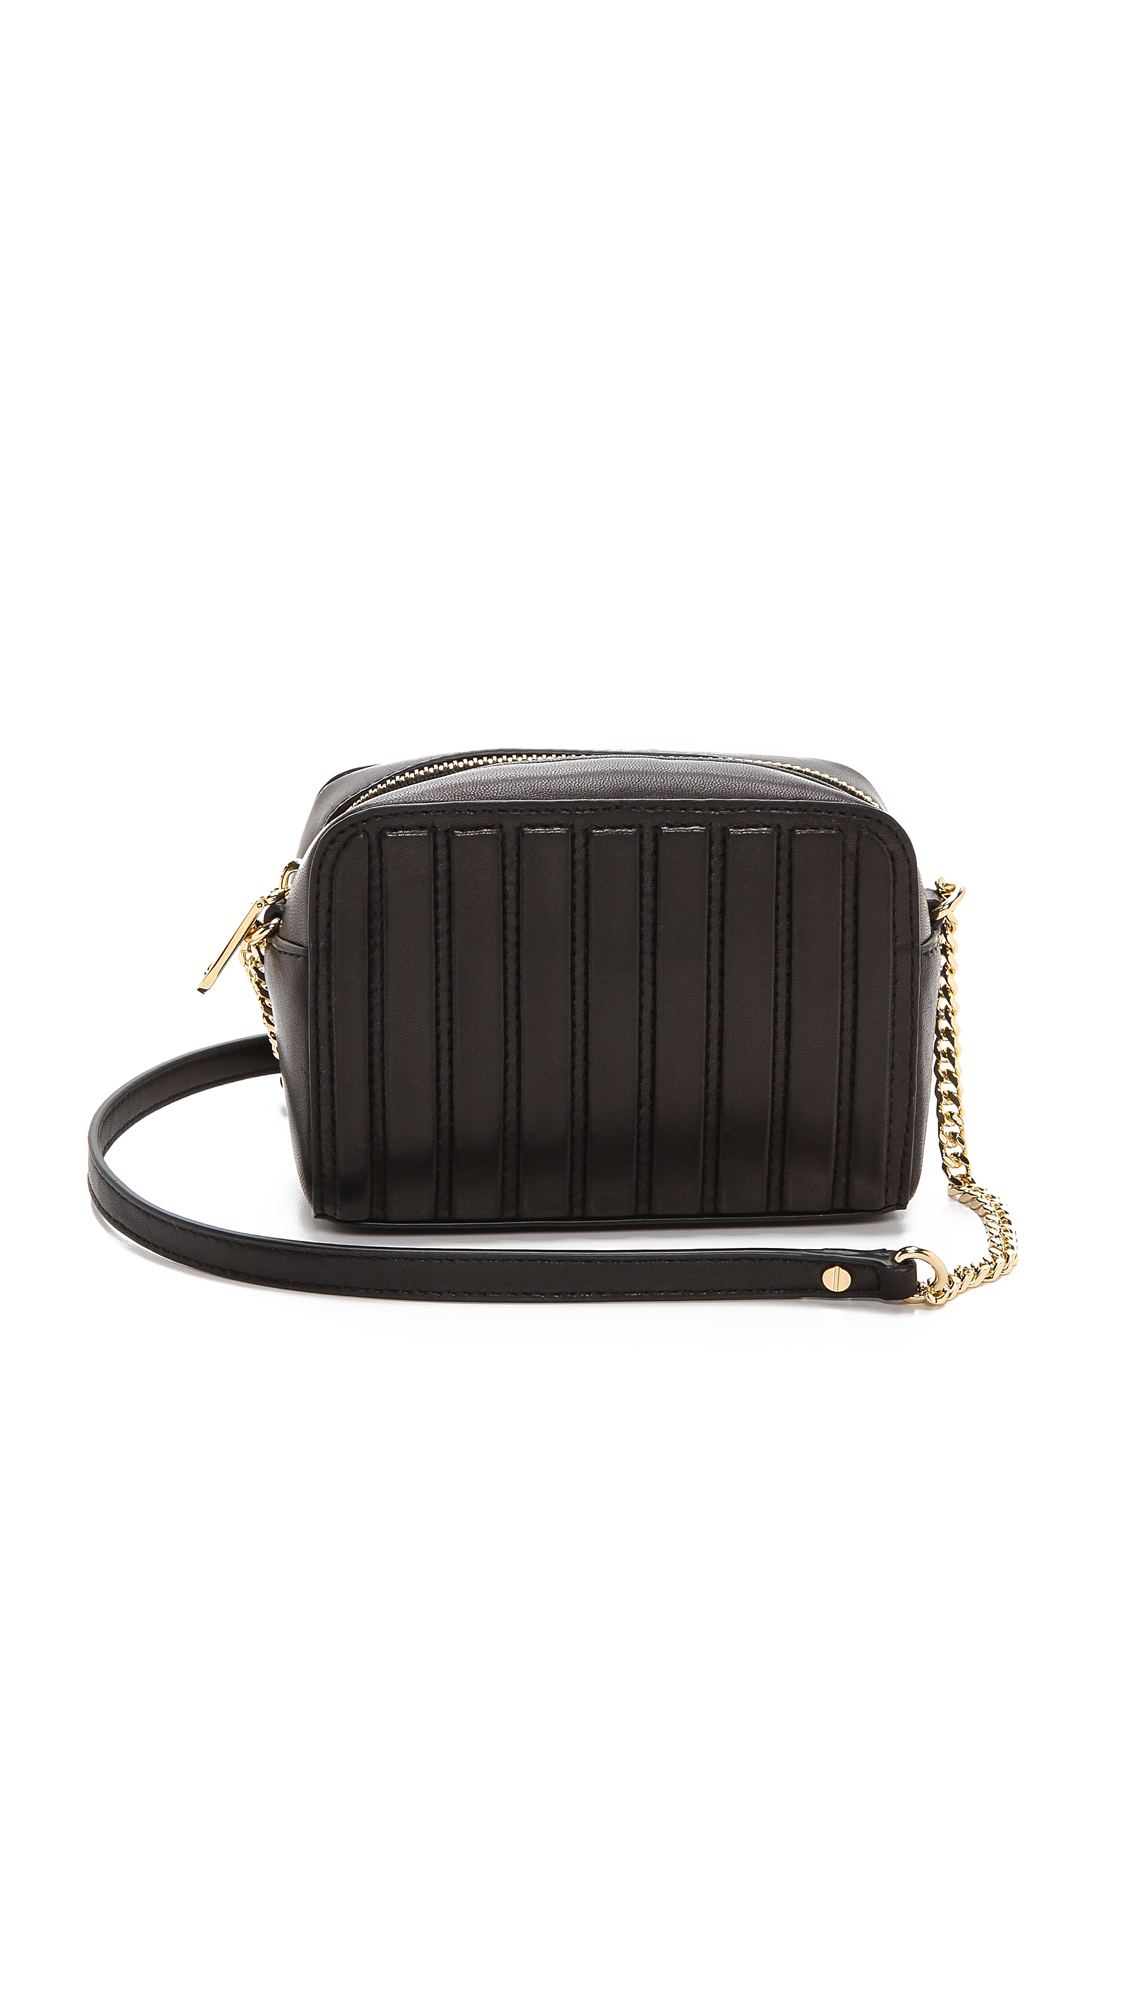 The Black Cross Body Bag Waiting For You!